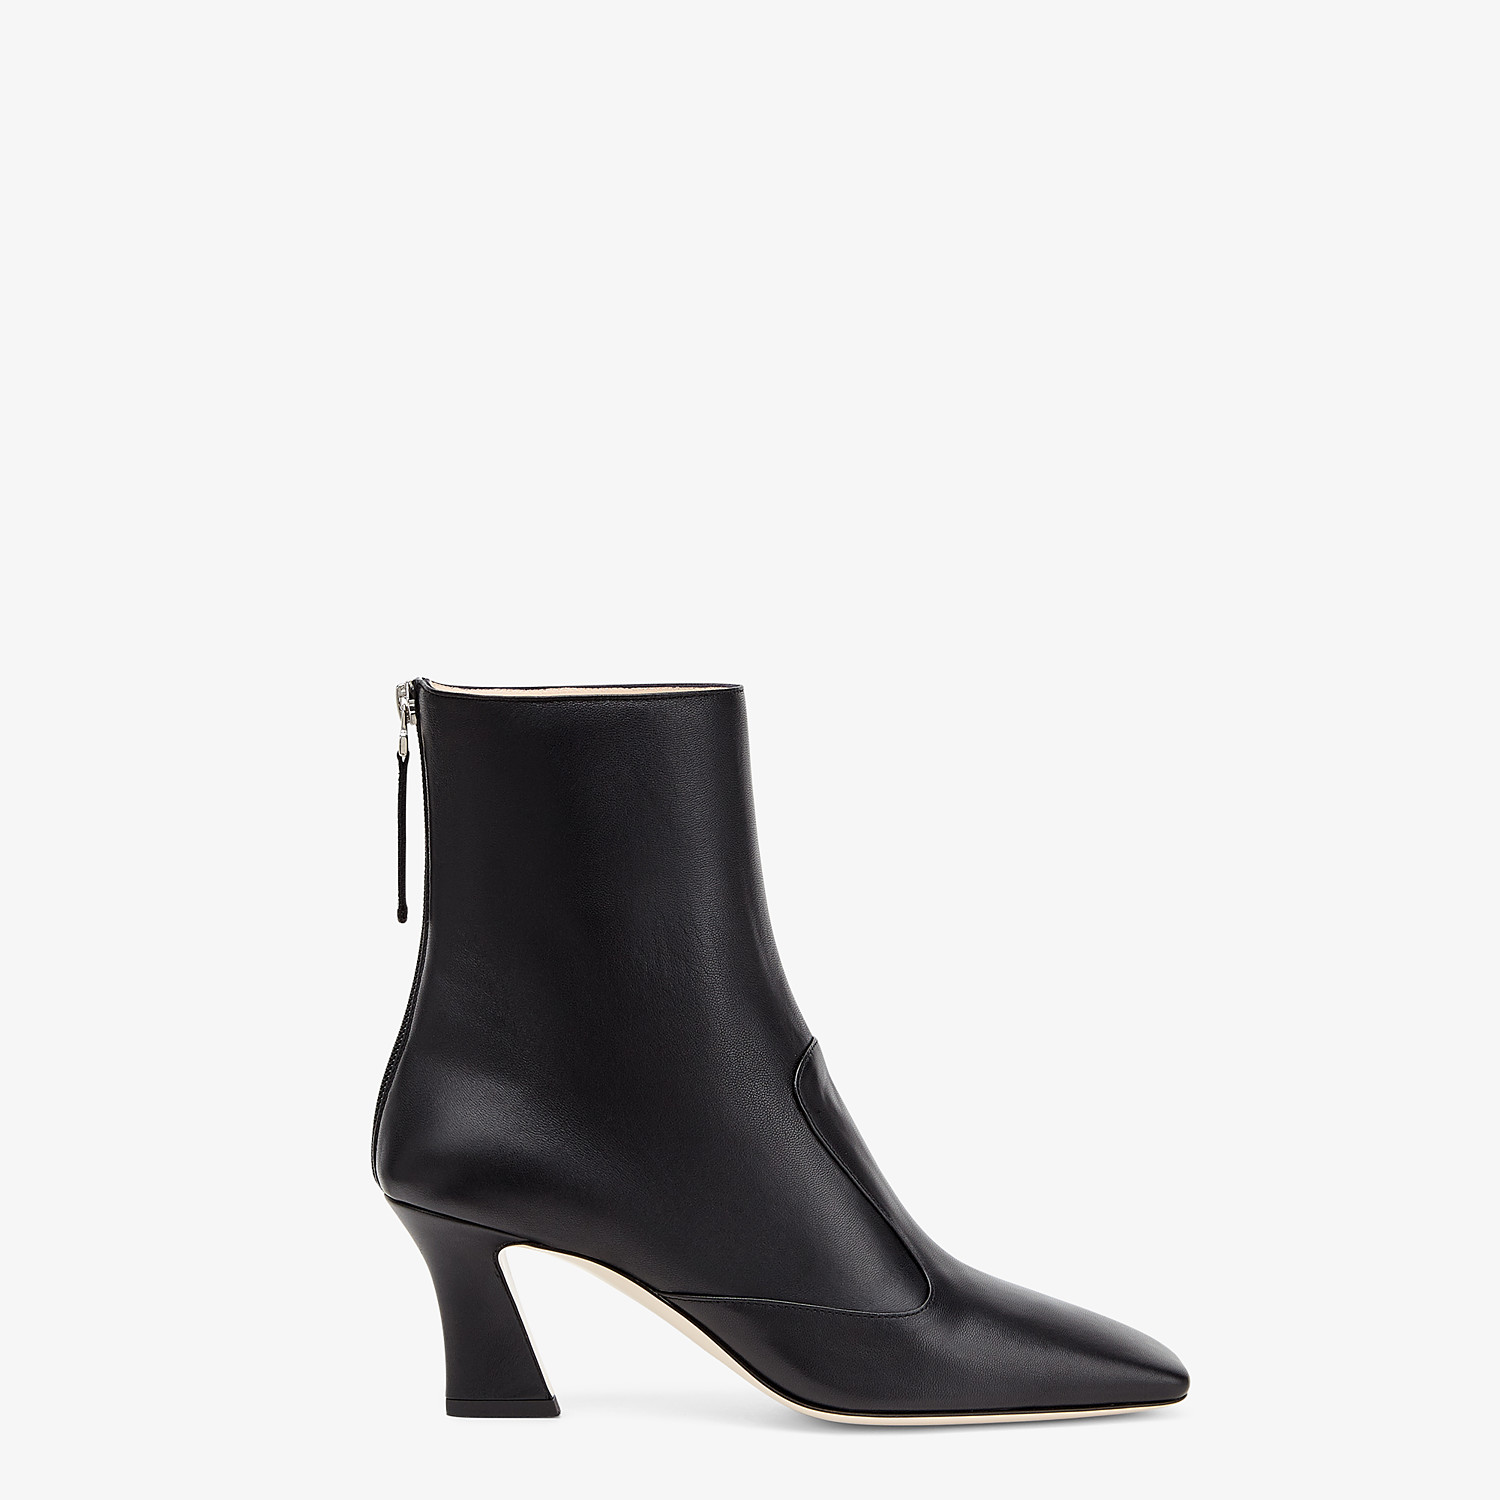 FENDI ANKLE BOOTS - Booties in black leather - view 1 detail